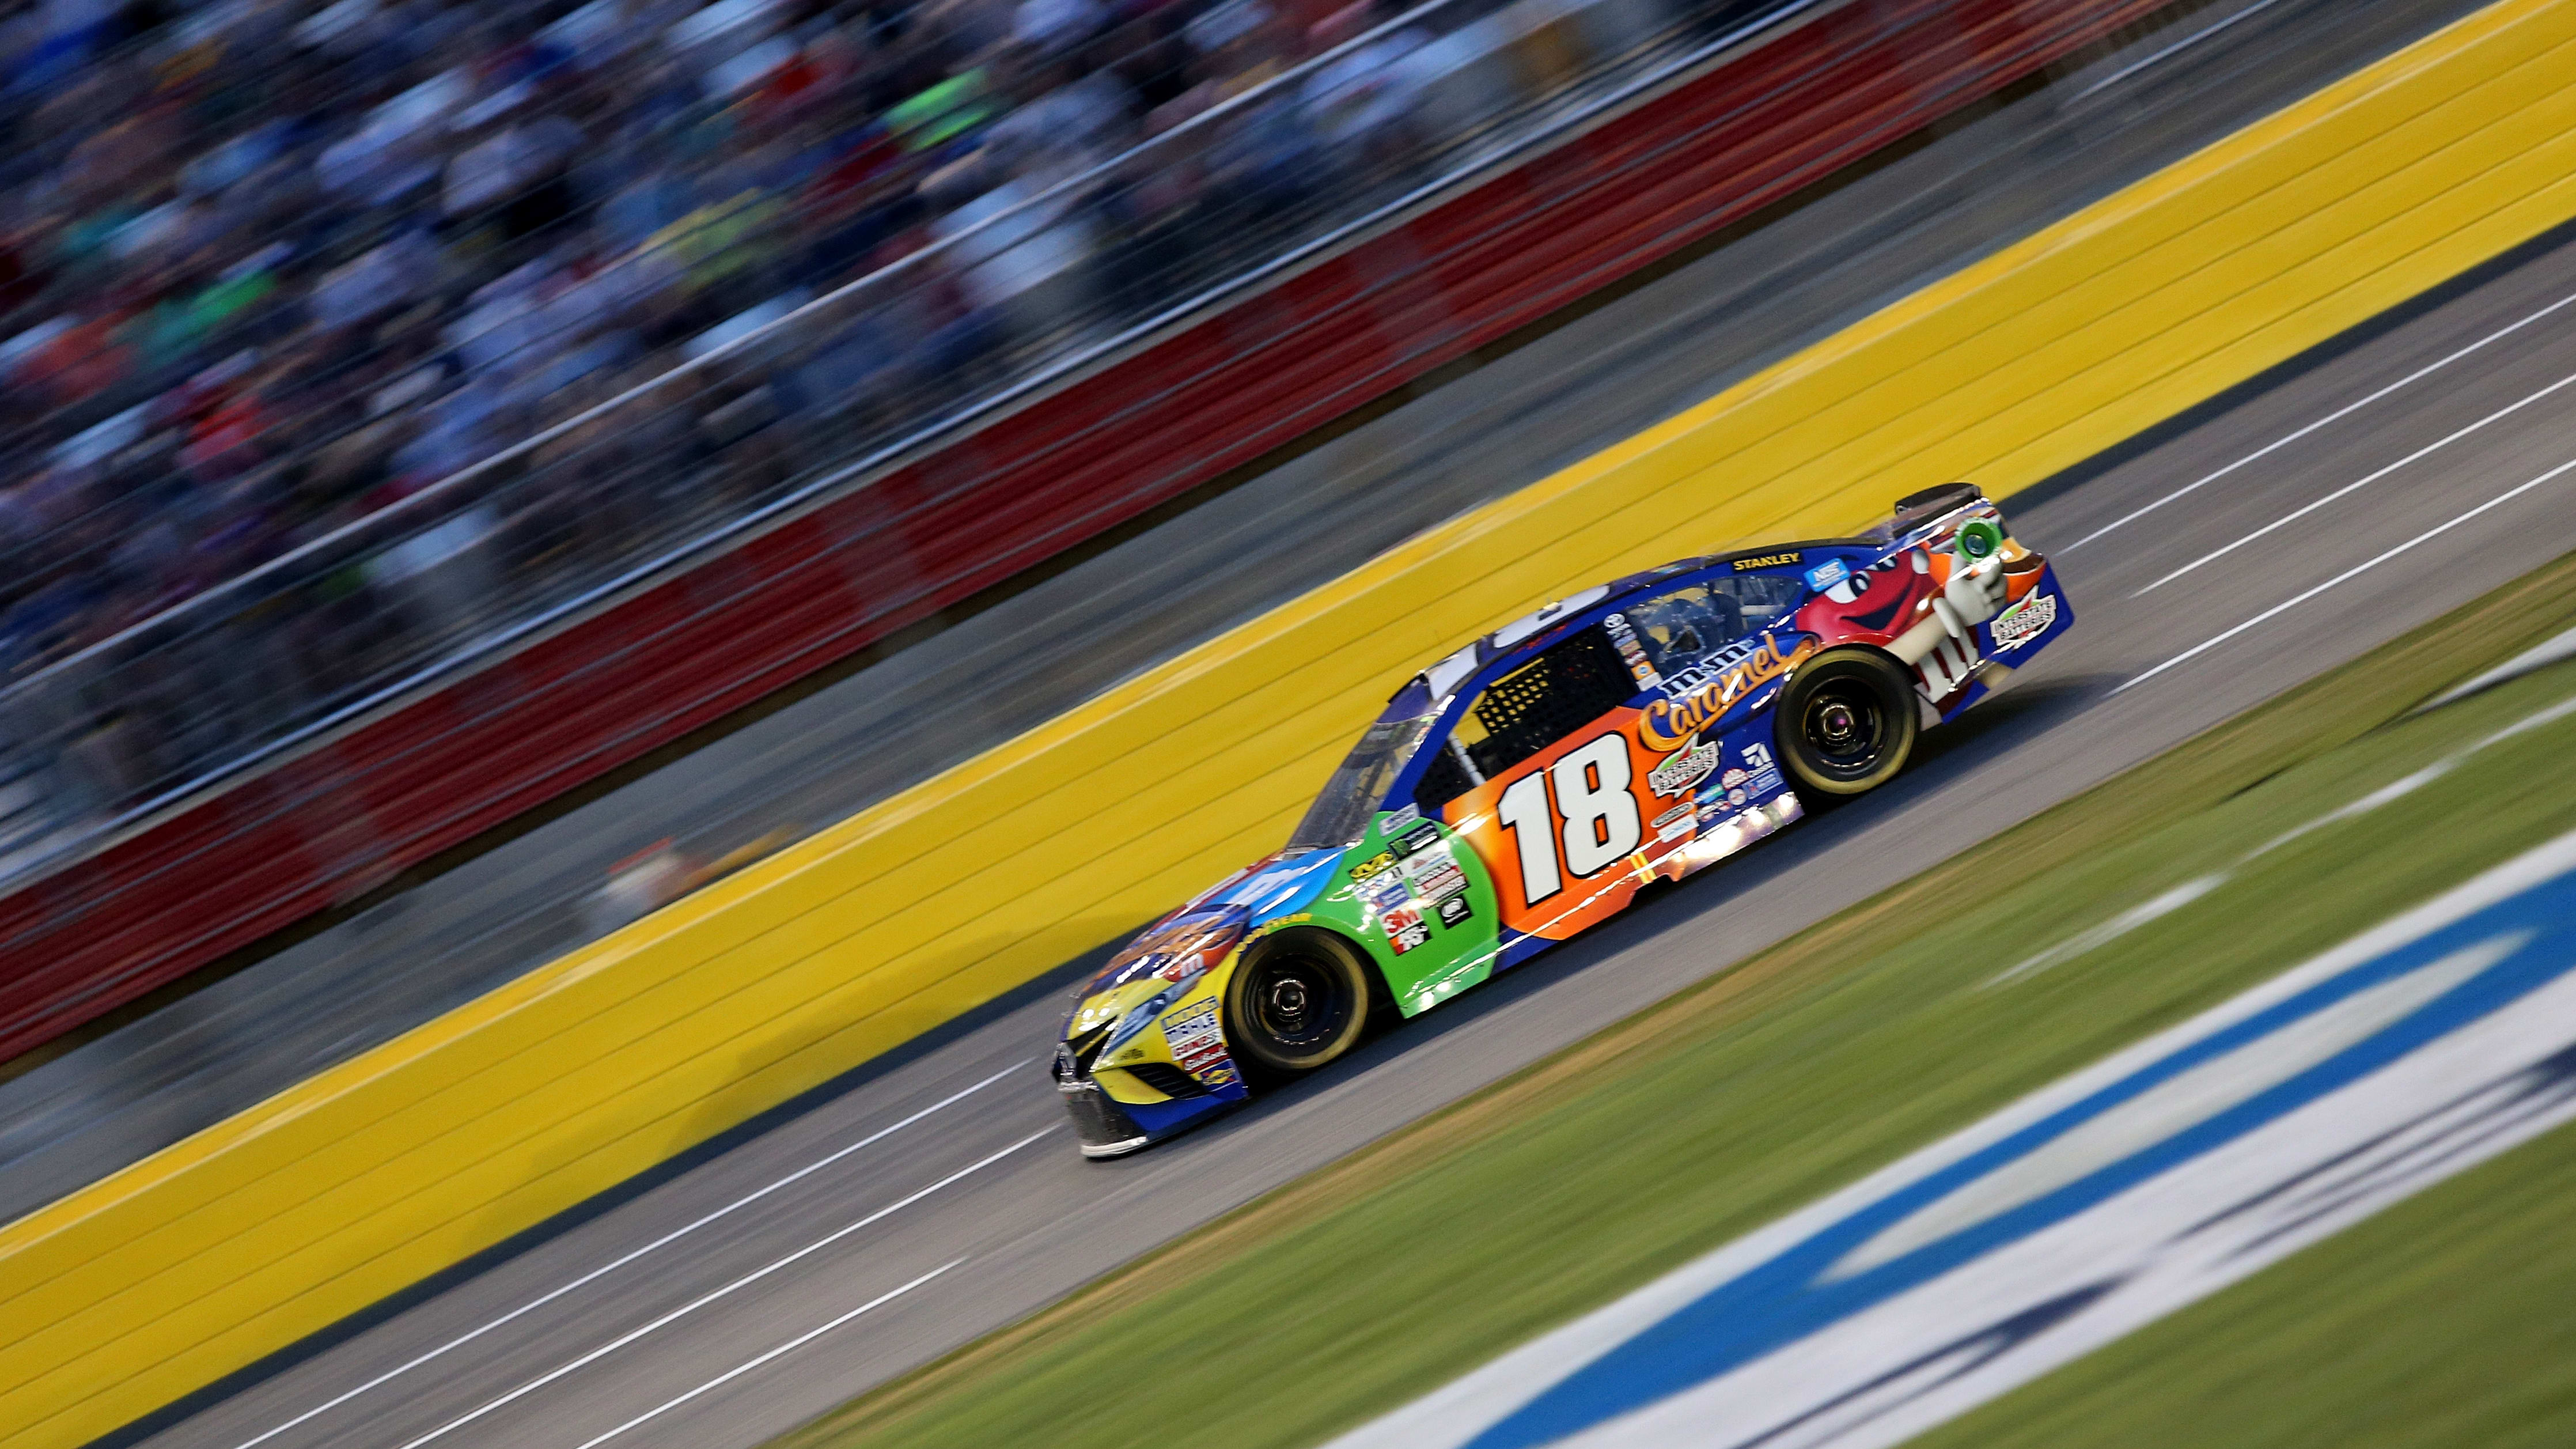 CHARLOTTE, NC - MAY 20:  Kyle Busch, driver of the #18 M&M's Caramel Toyota, races during the Monster Energy NASCAR All Star Race at Charlotte Motor Speedway on May 20, 2017 in Charlotte, North Carolina.  (Photo by Jerry Markland/Getty Images)